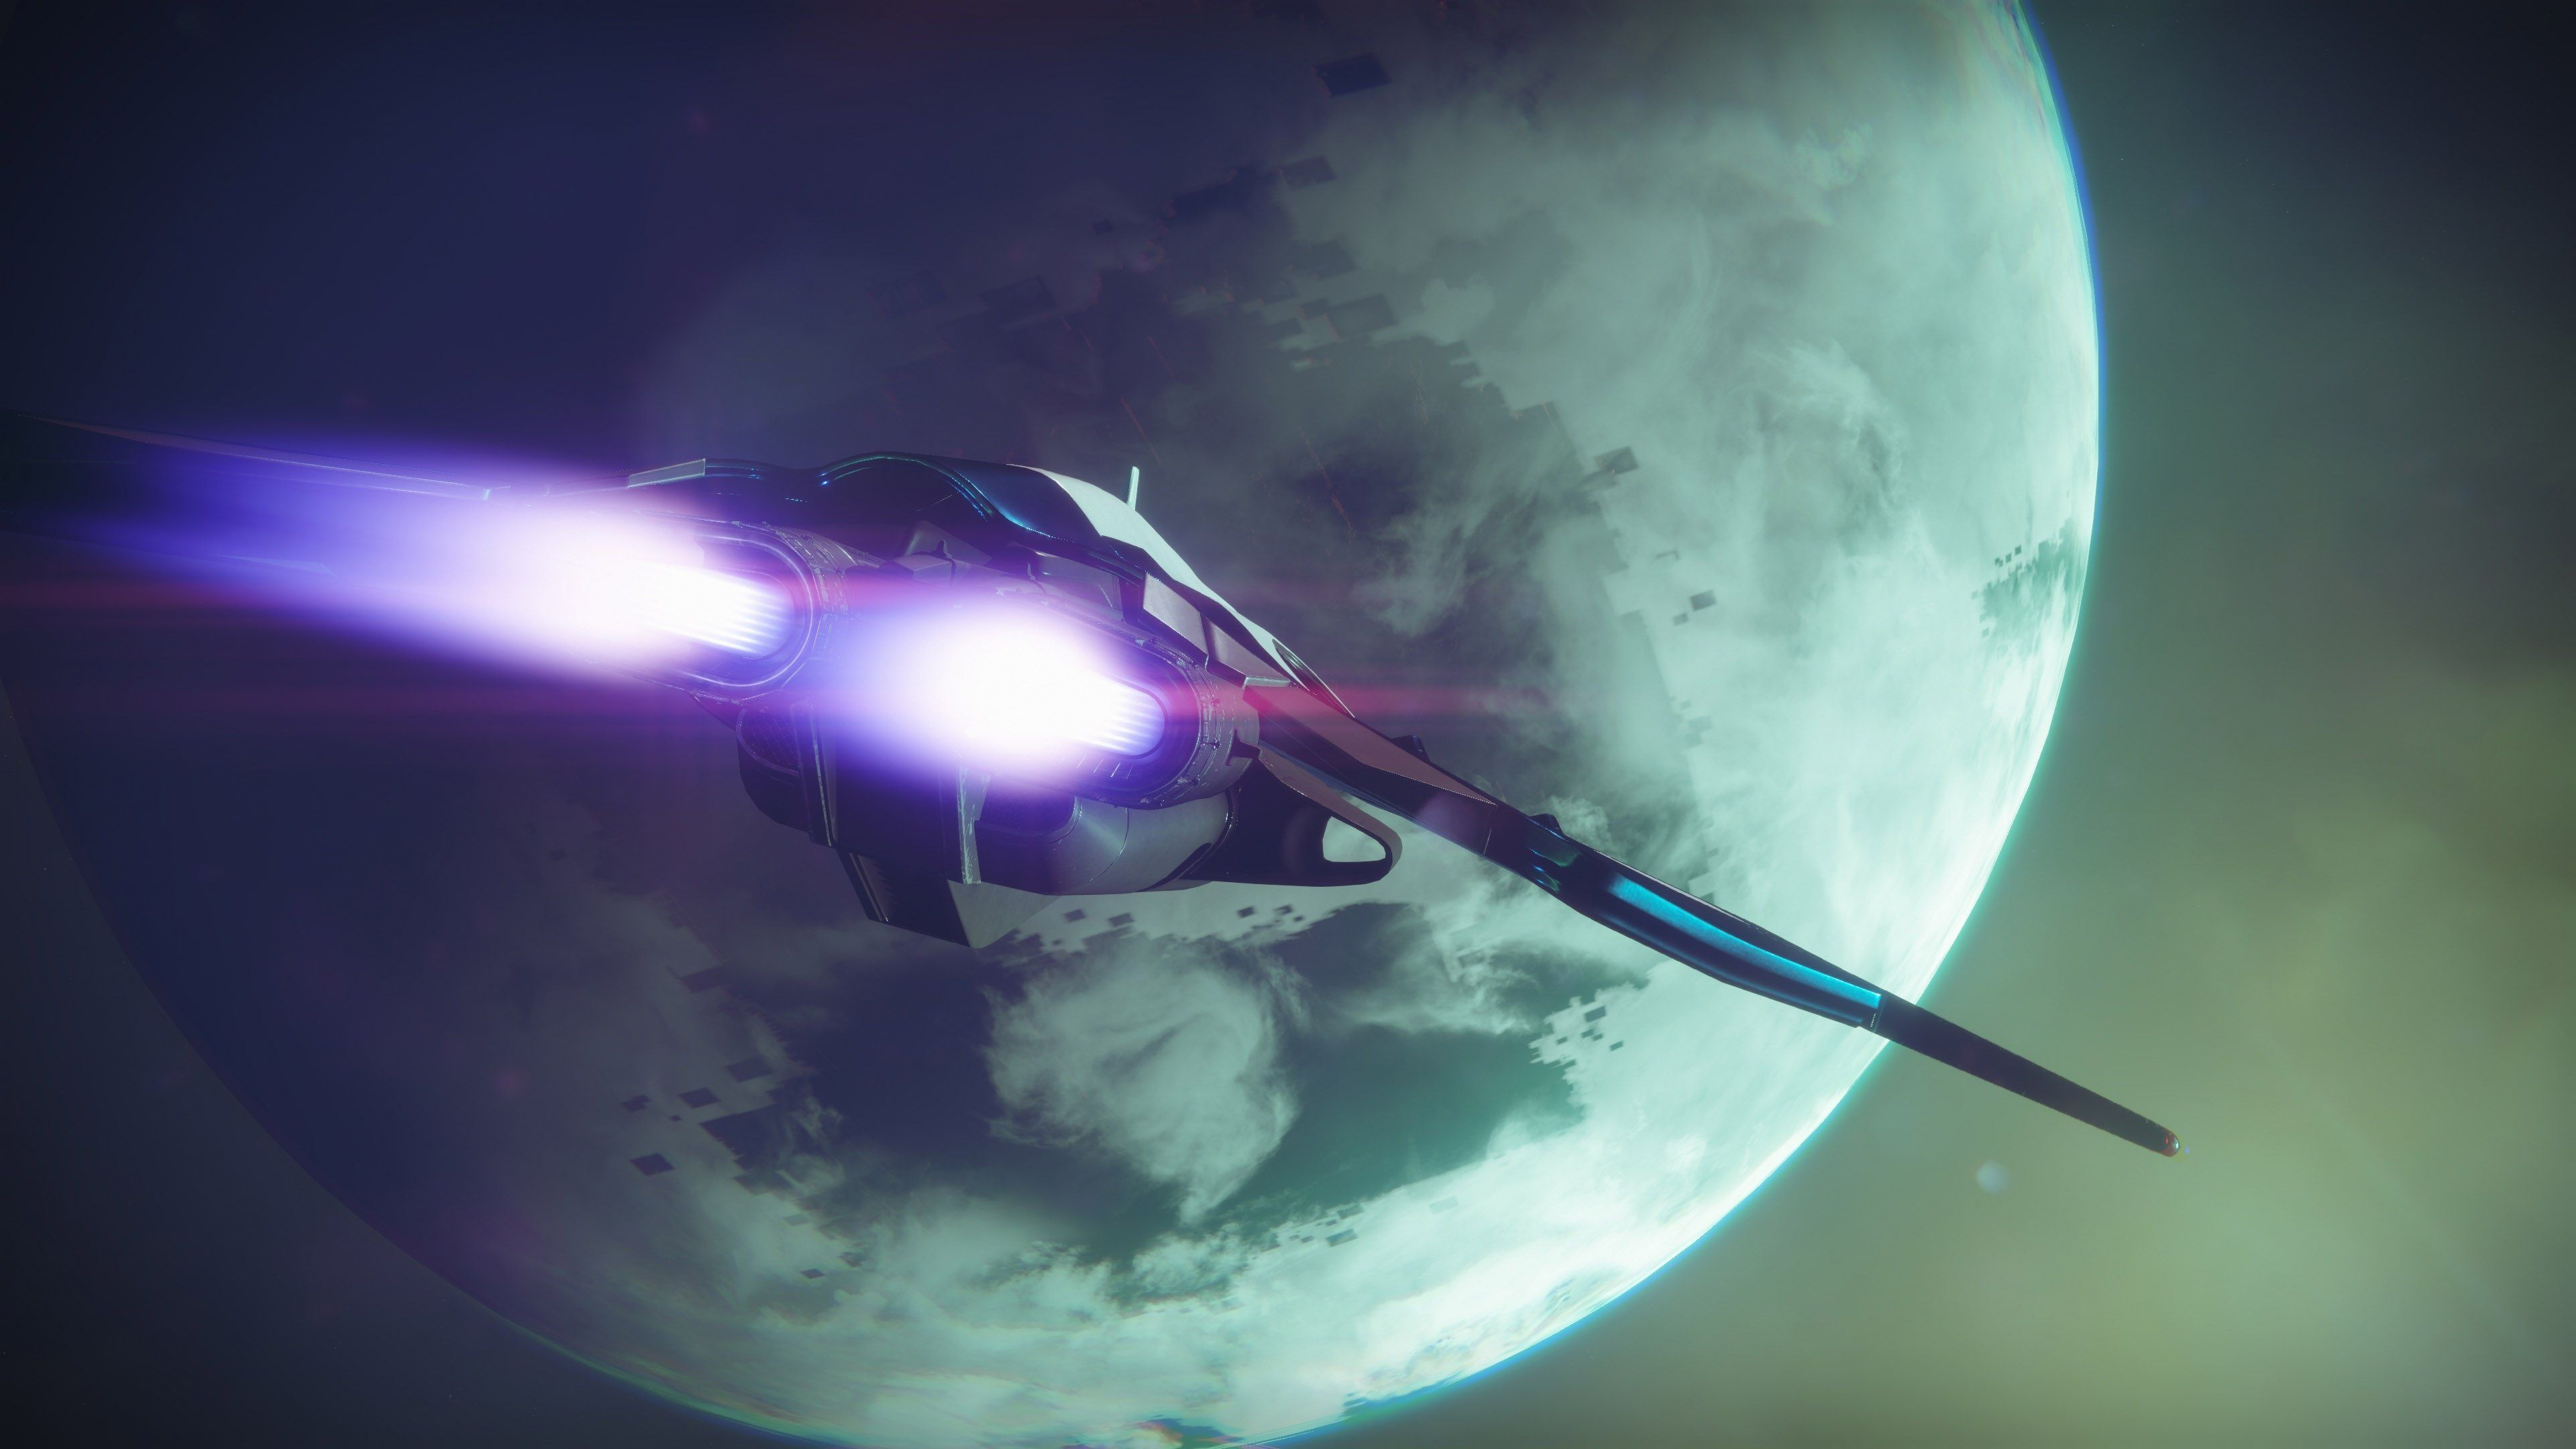 3840x2160 destiny 2 4k cool images hd